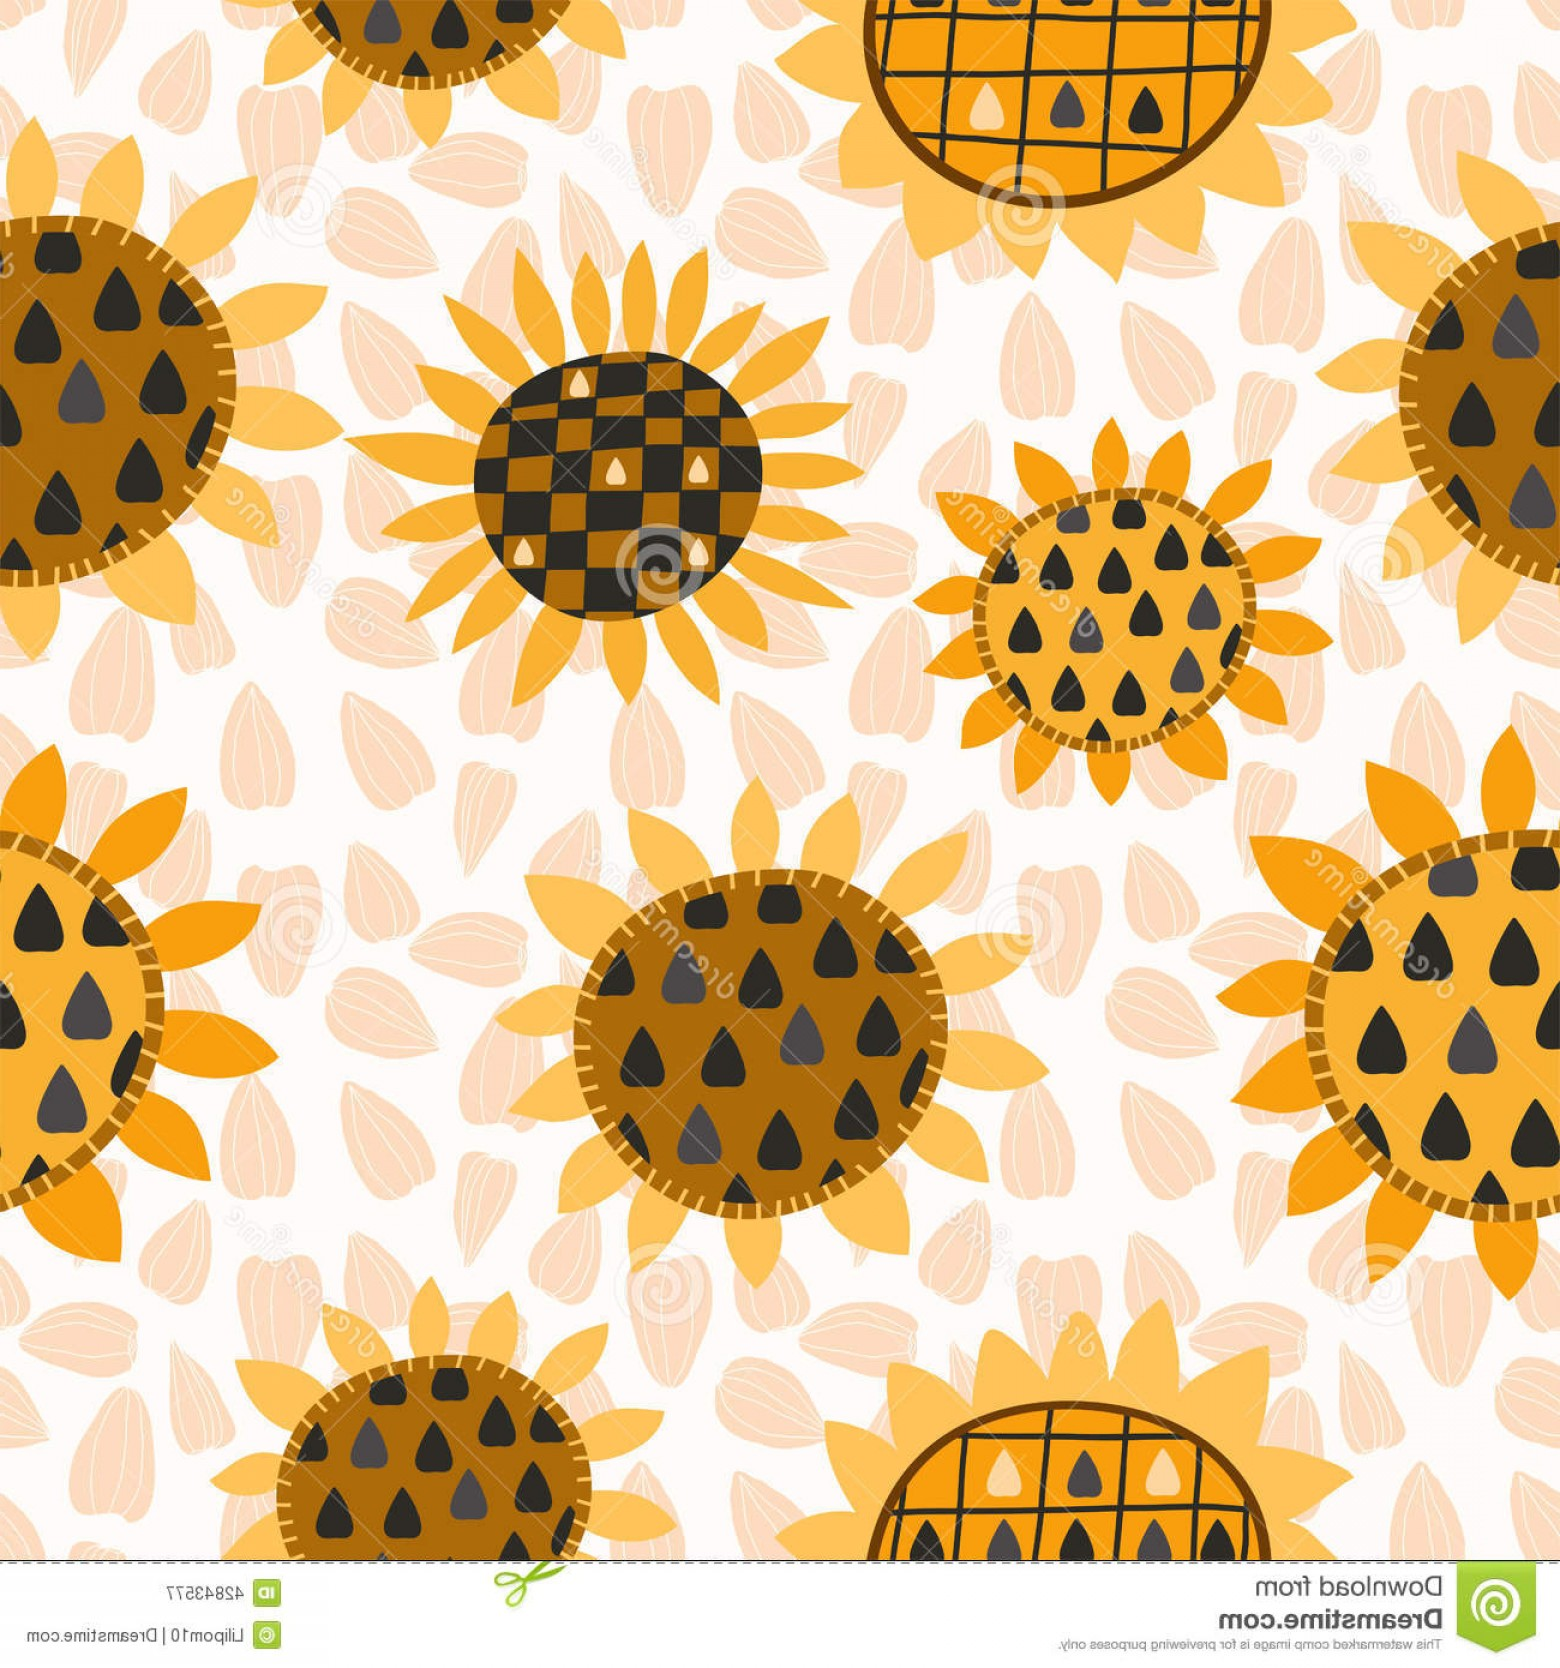 Sunflower Vector Pattern: Stock Illustration Seamless Pattern Sunflower Seeds Textiles Interior Design Book Design Website Background Image